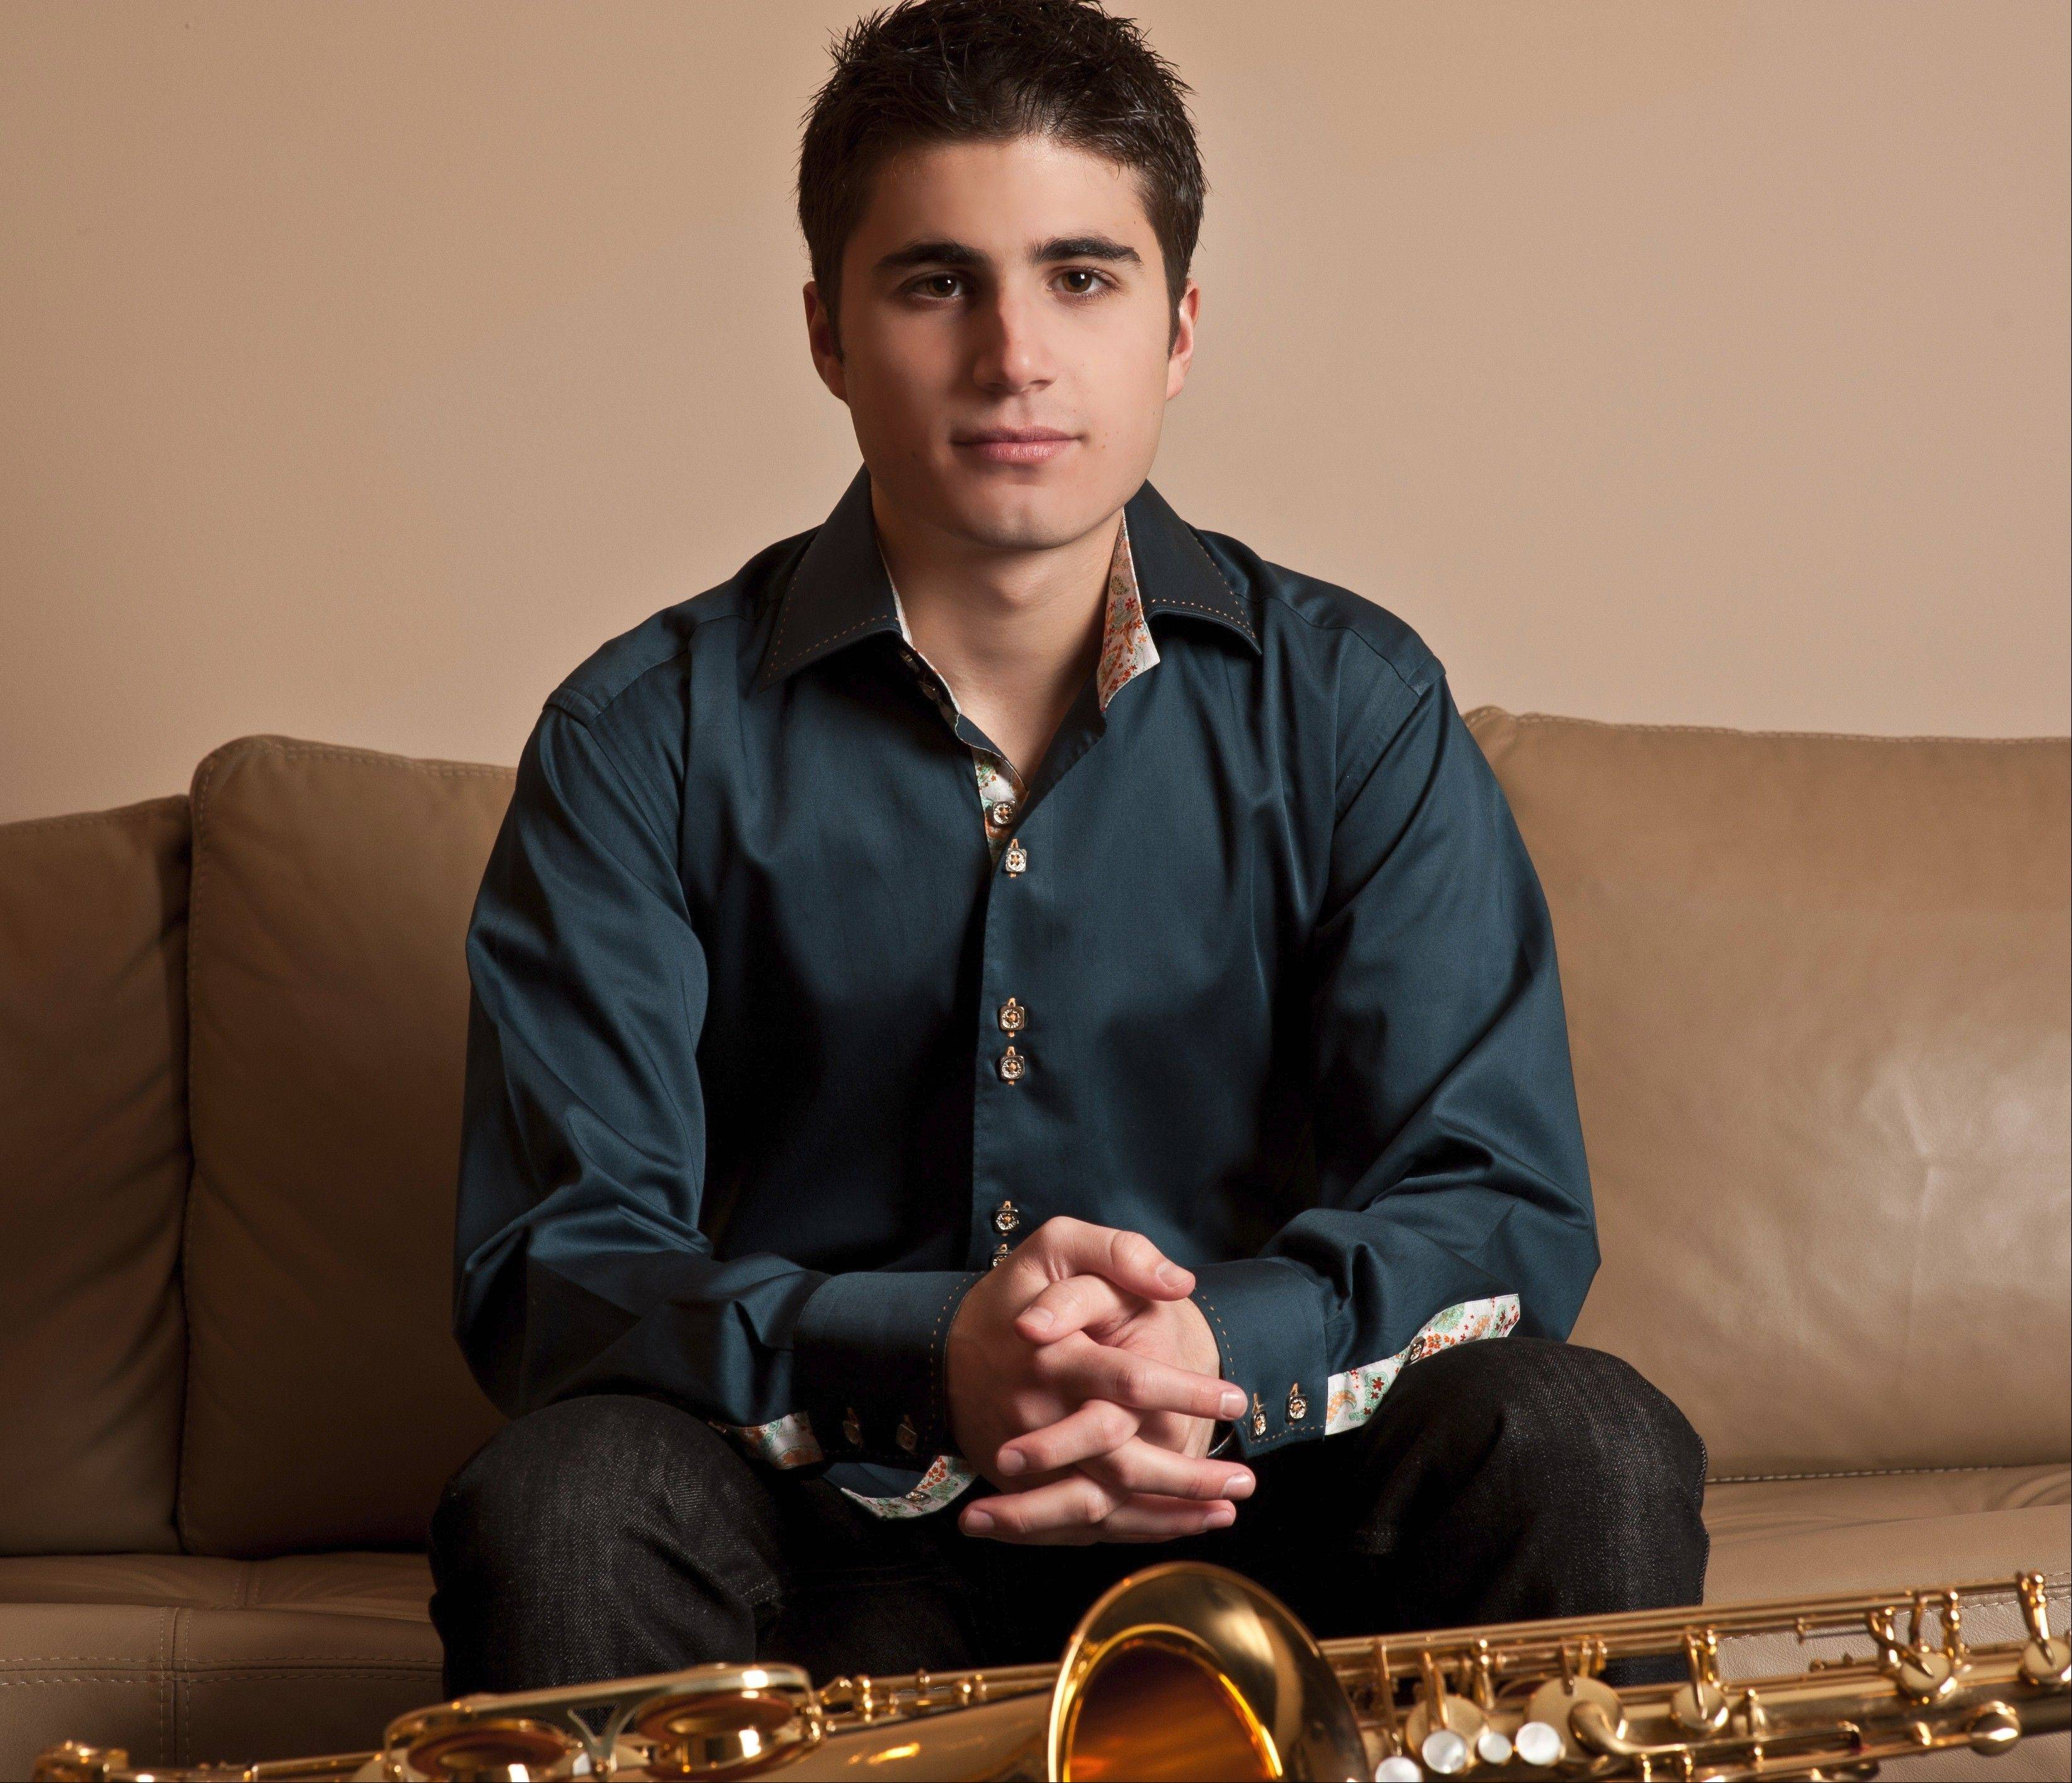 Saxophonist Vincent Ingala performs in concert at the Montrose Room in Rosemont on Saturday, Oct. 26.